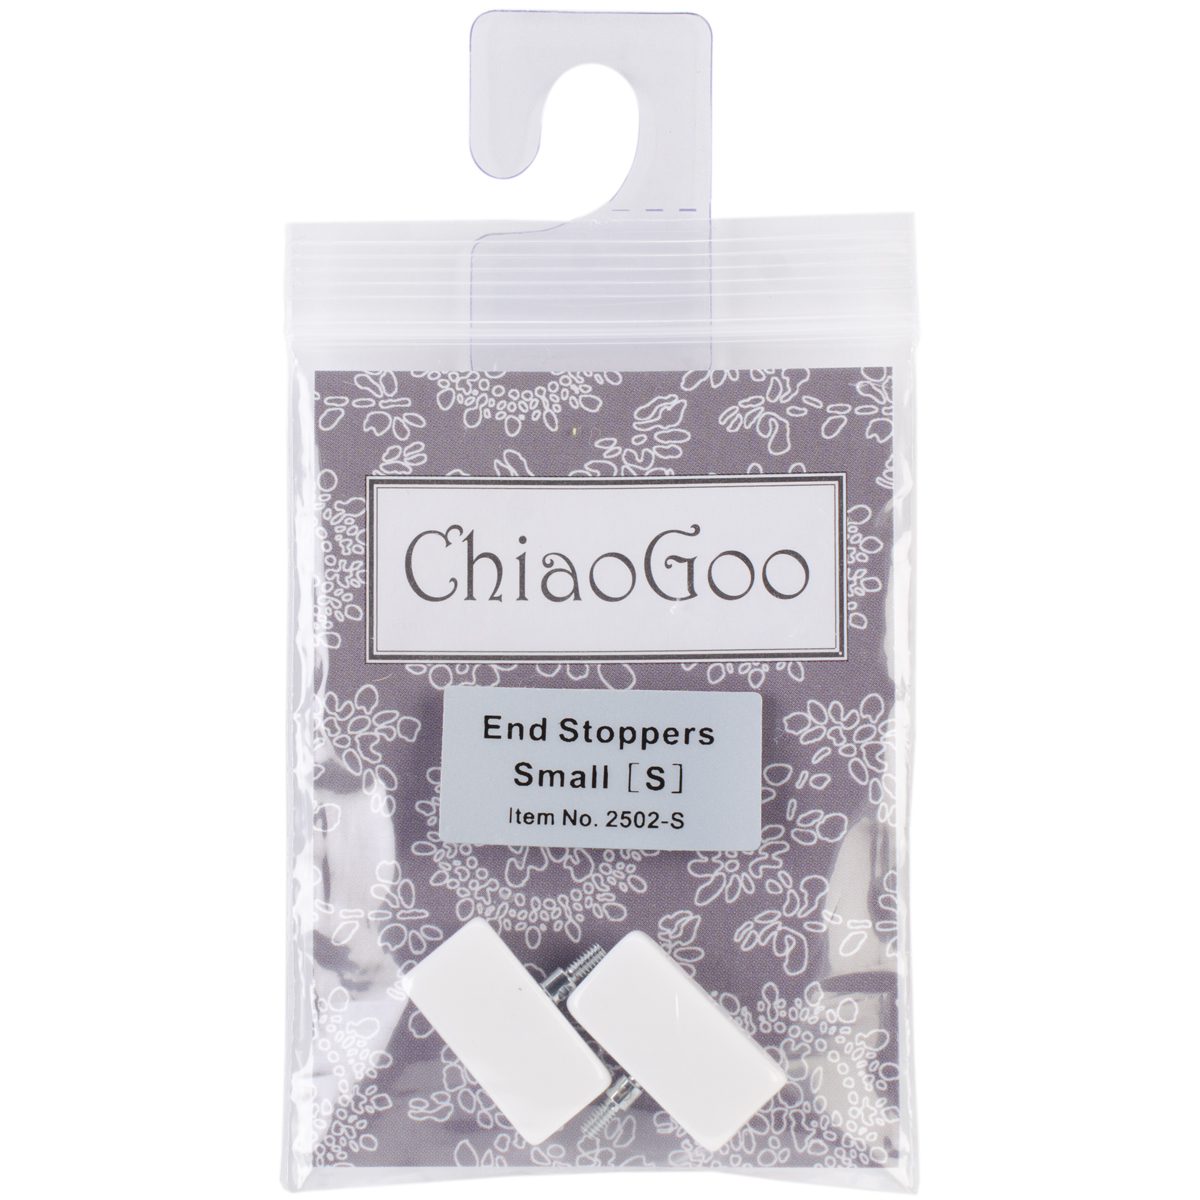 ChiaoGoo End Stoppers-Small 2/Pkg